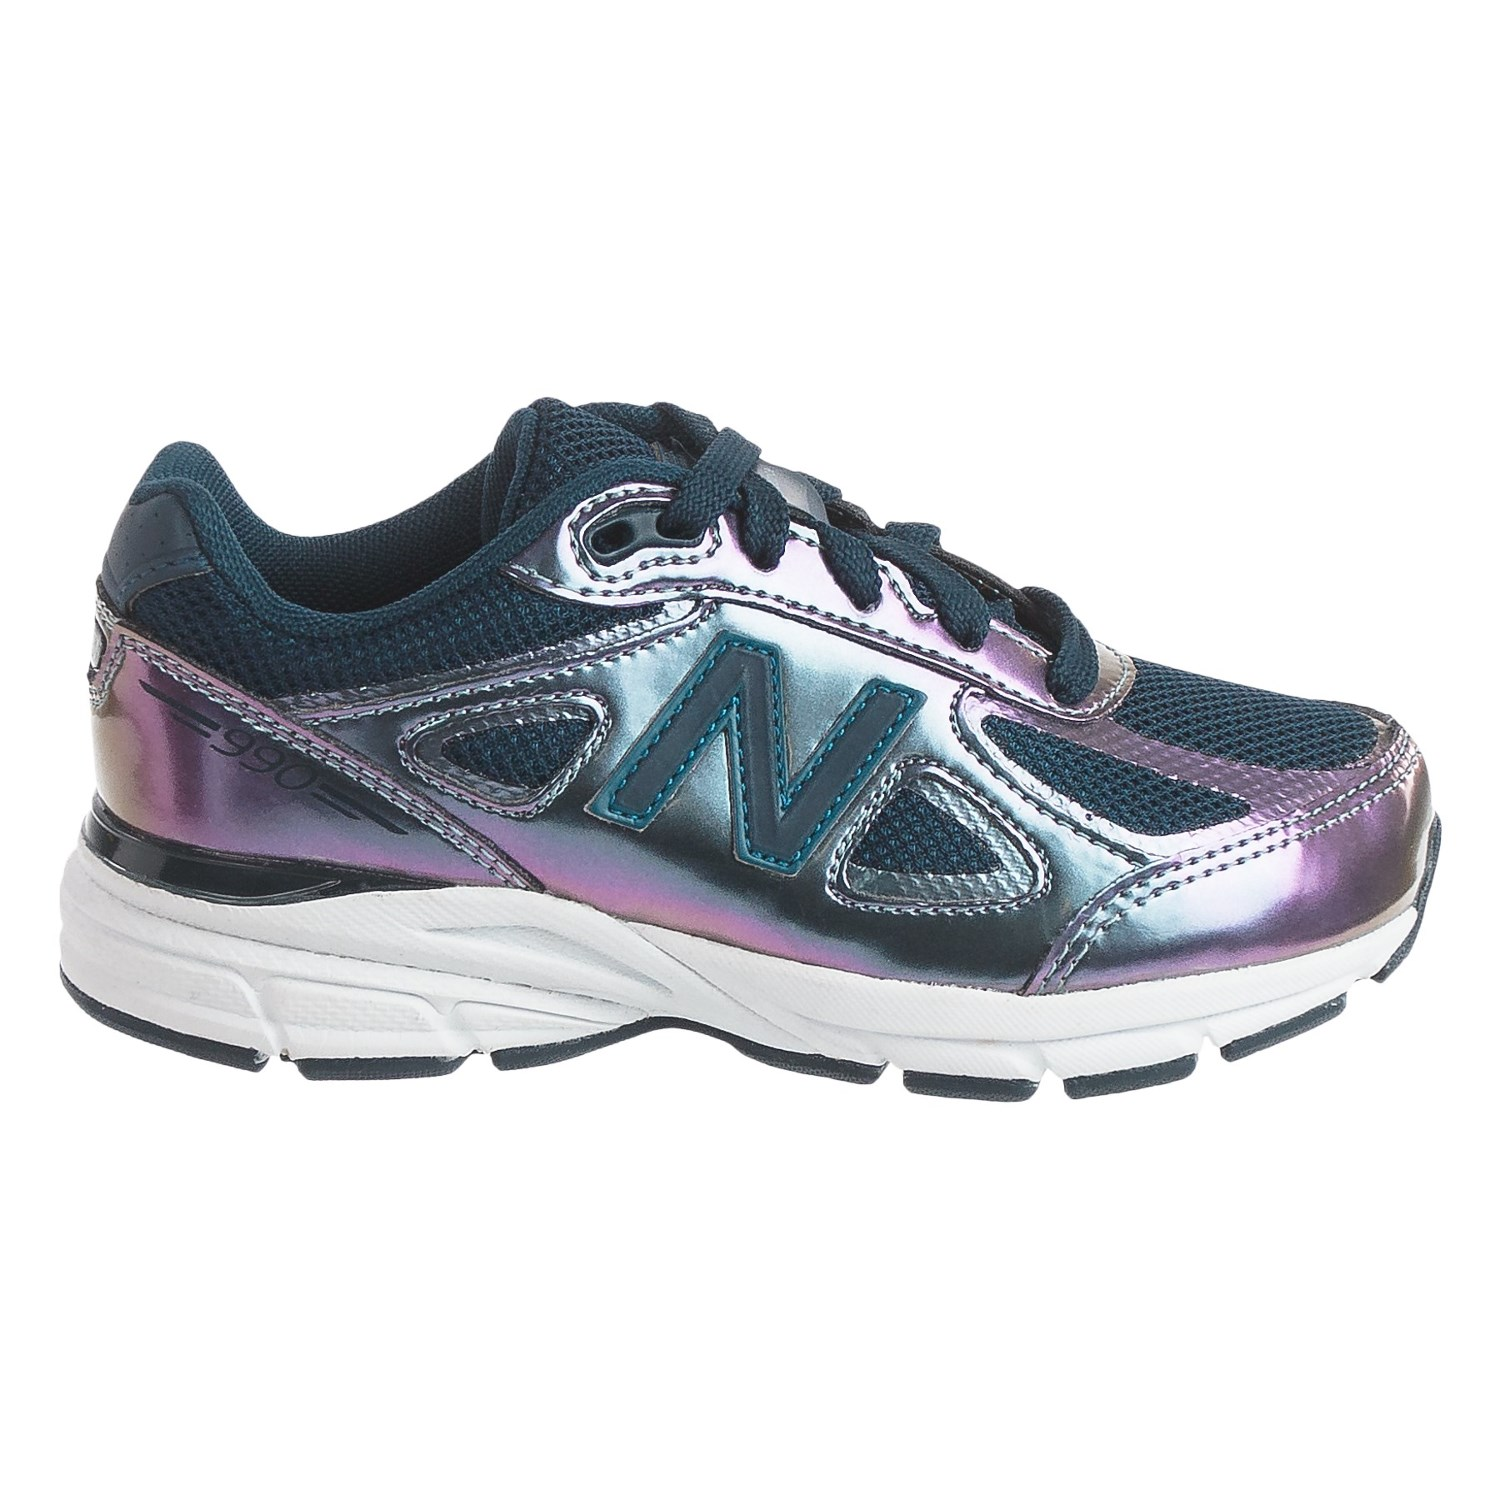 New balance vazee rush v2 mens running shoes black multi online - New Balance 990 Running Shoes For Little And Big Girls